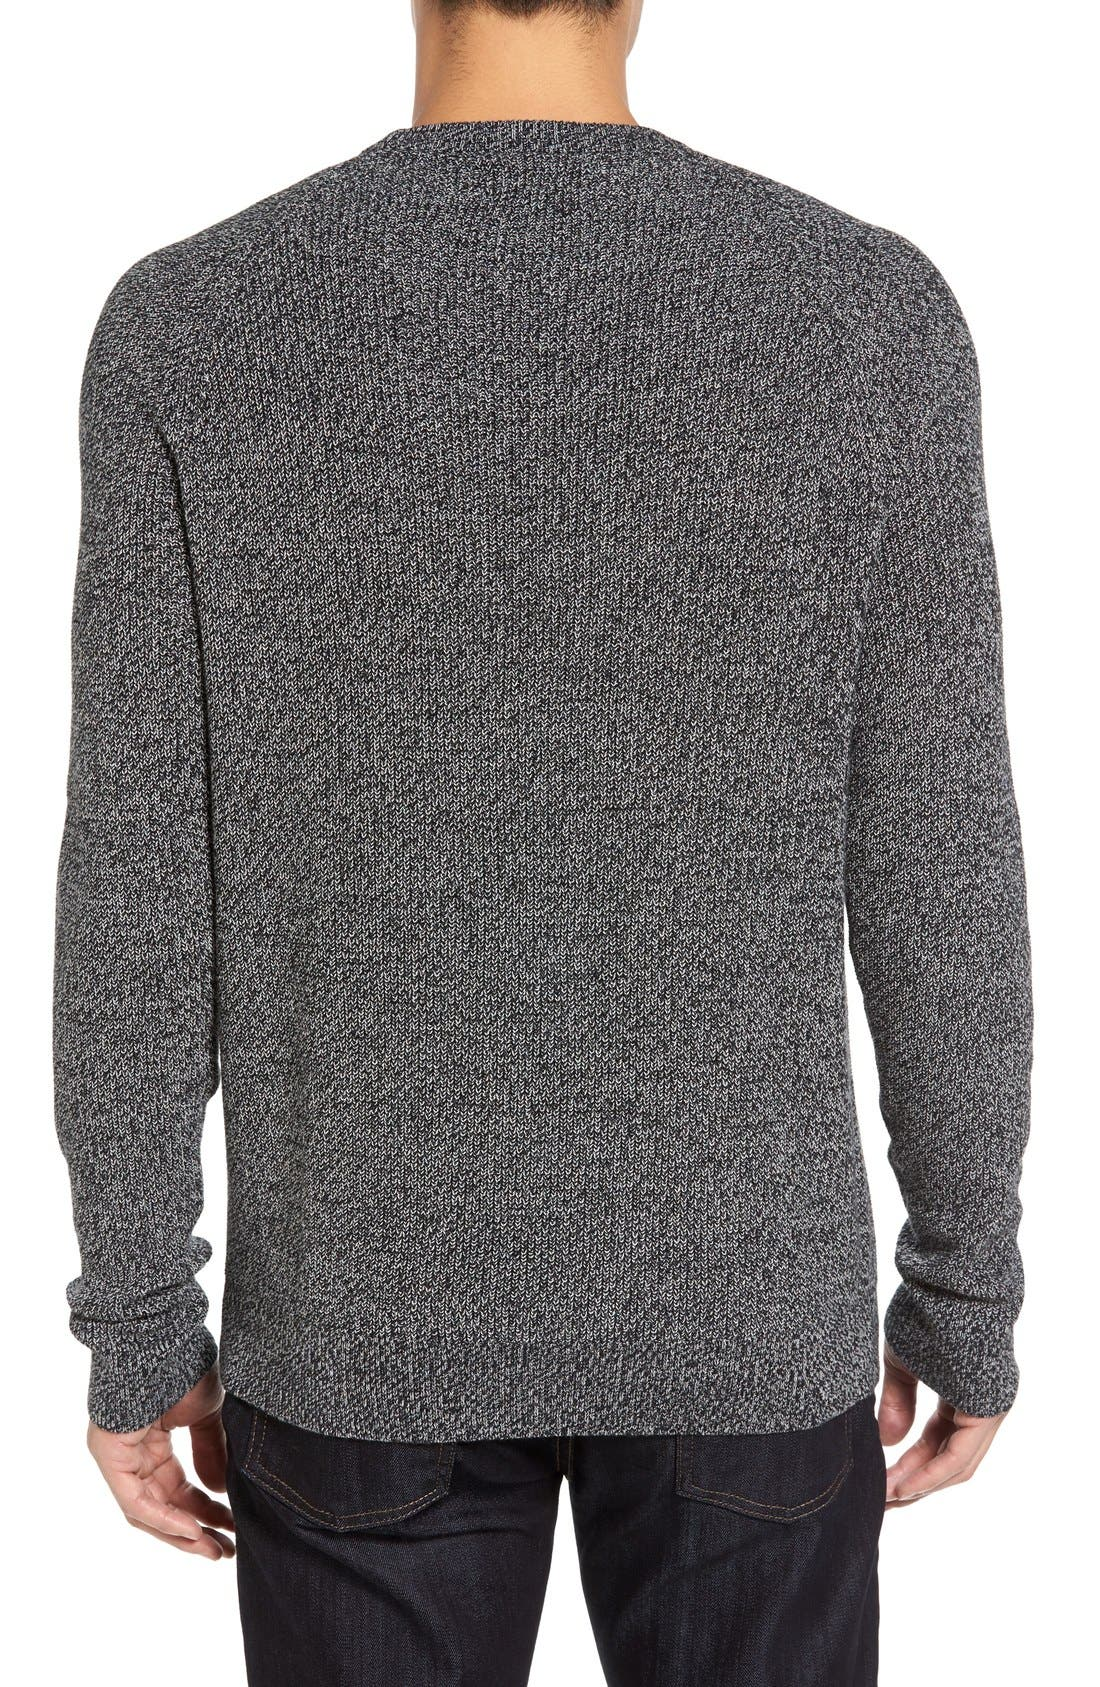 Crewneck Sweater,                             Alternate thumbnail 24, color,